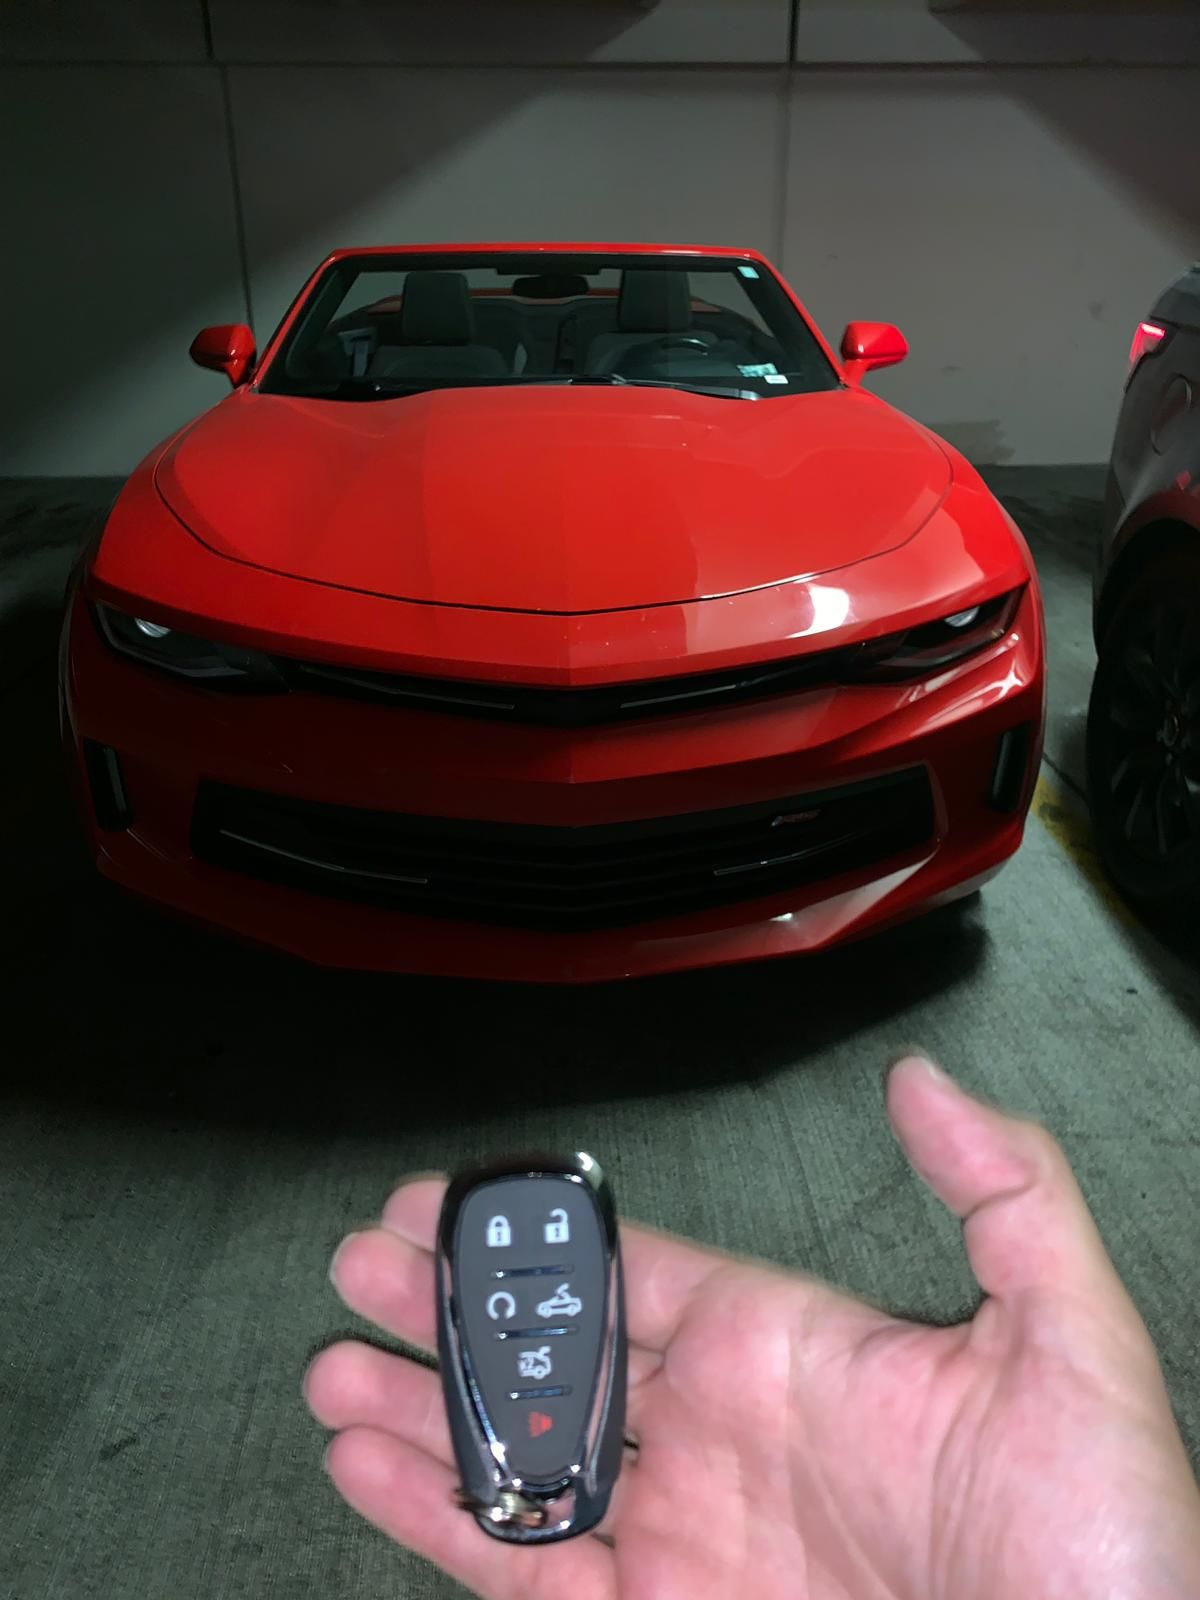 Chevrolet Camaro Car Key Replacement (With images) Car